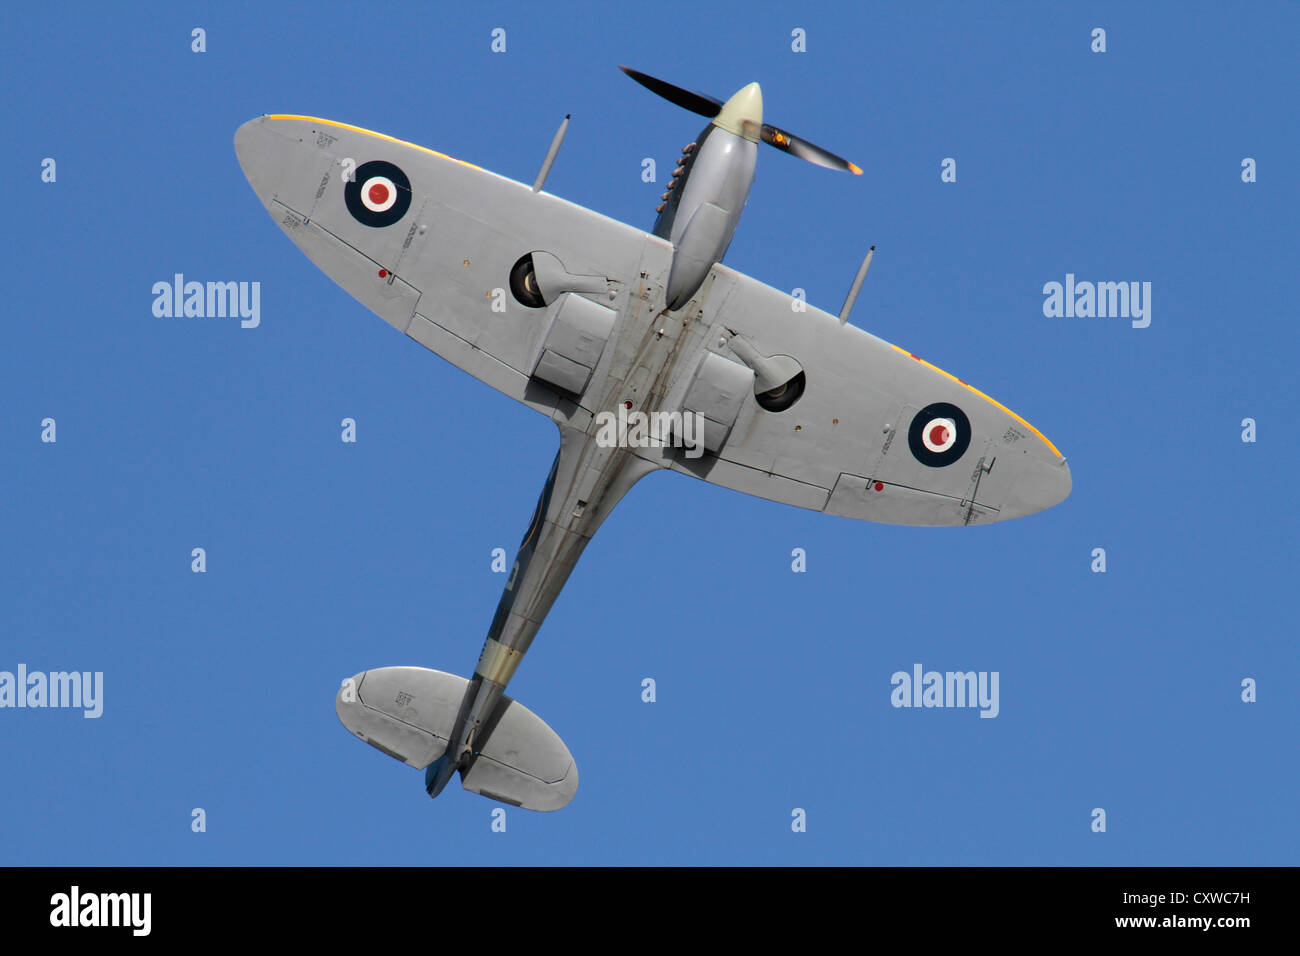 supermarine-spitfire-ix-wartime-fighter-